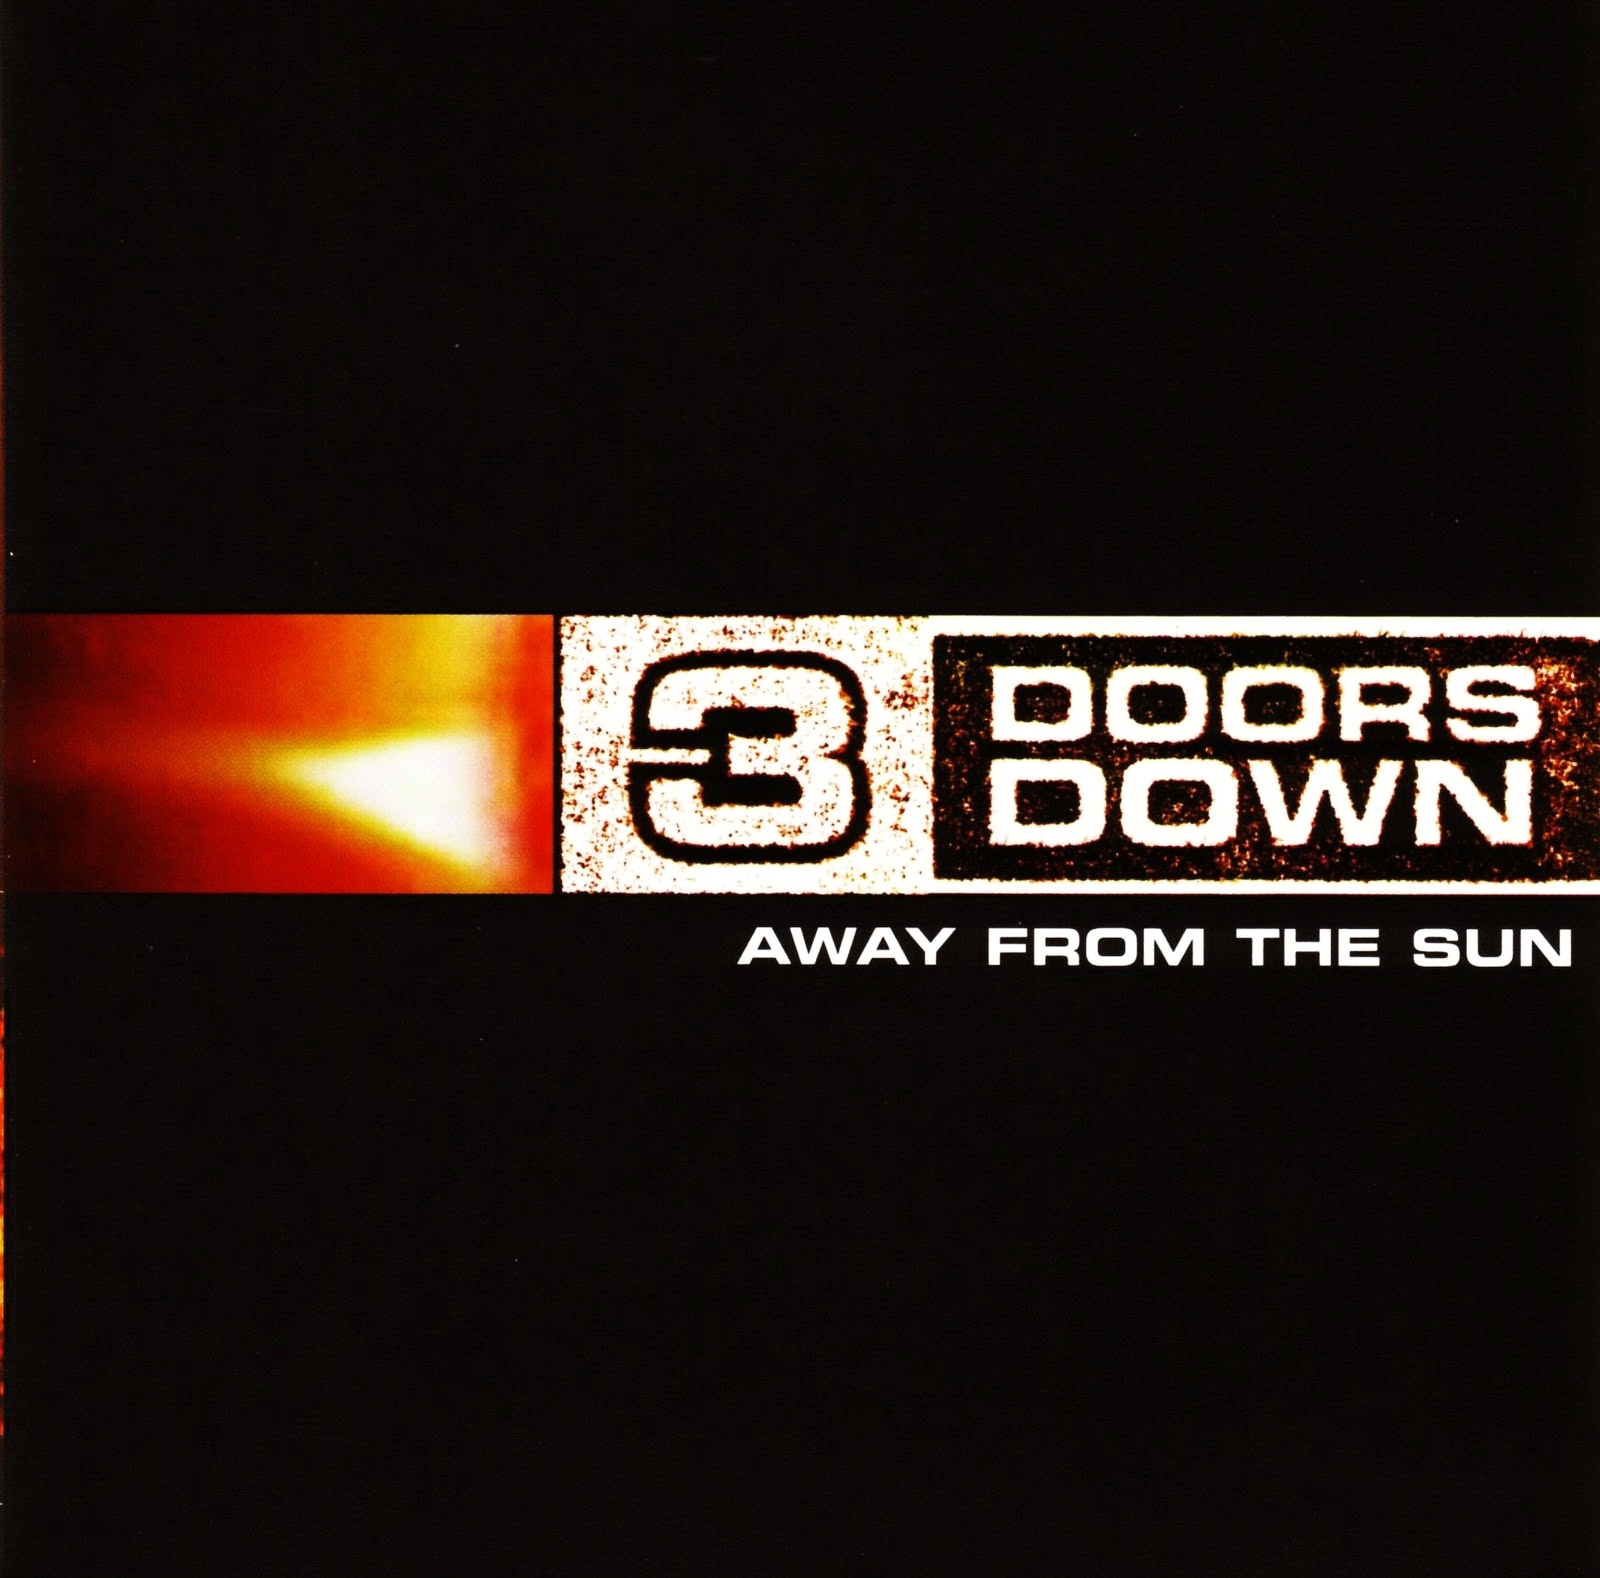 00. 3 Doors Down - Away From The Sun (Special Edition) - 2002 cover.jpg